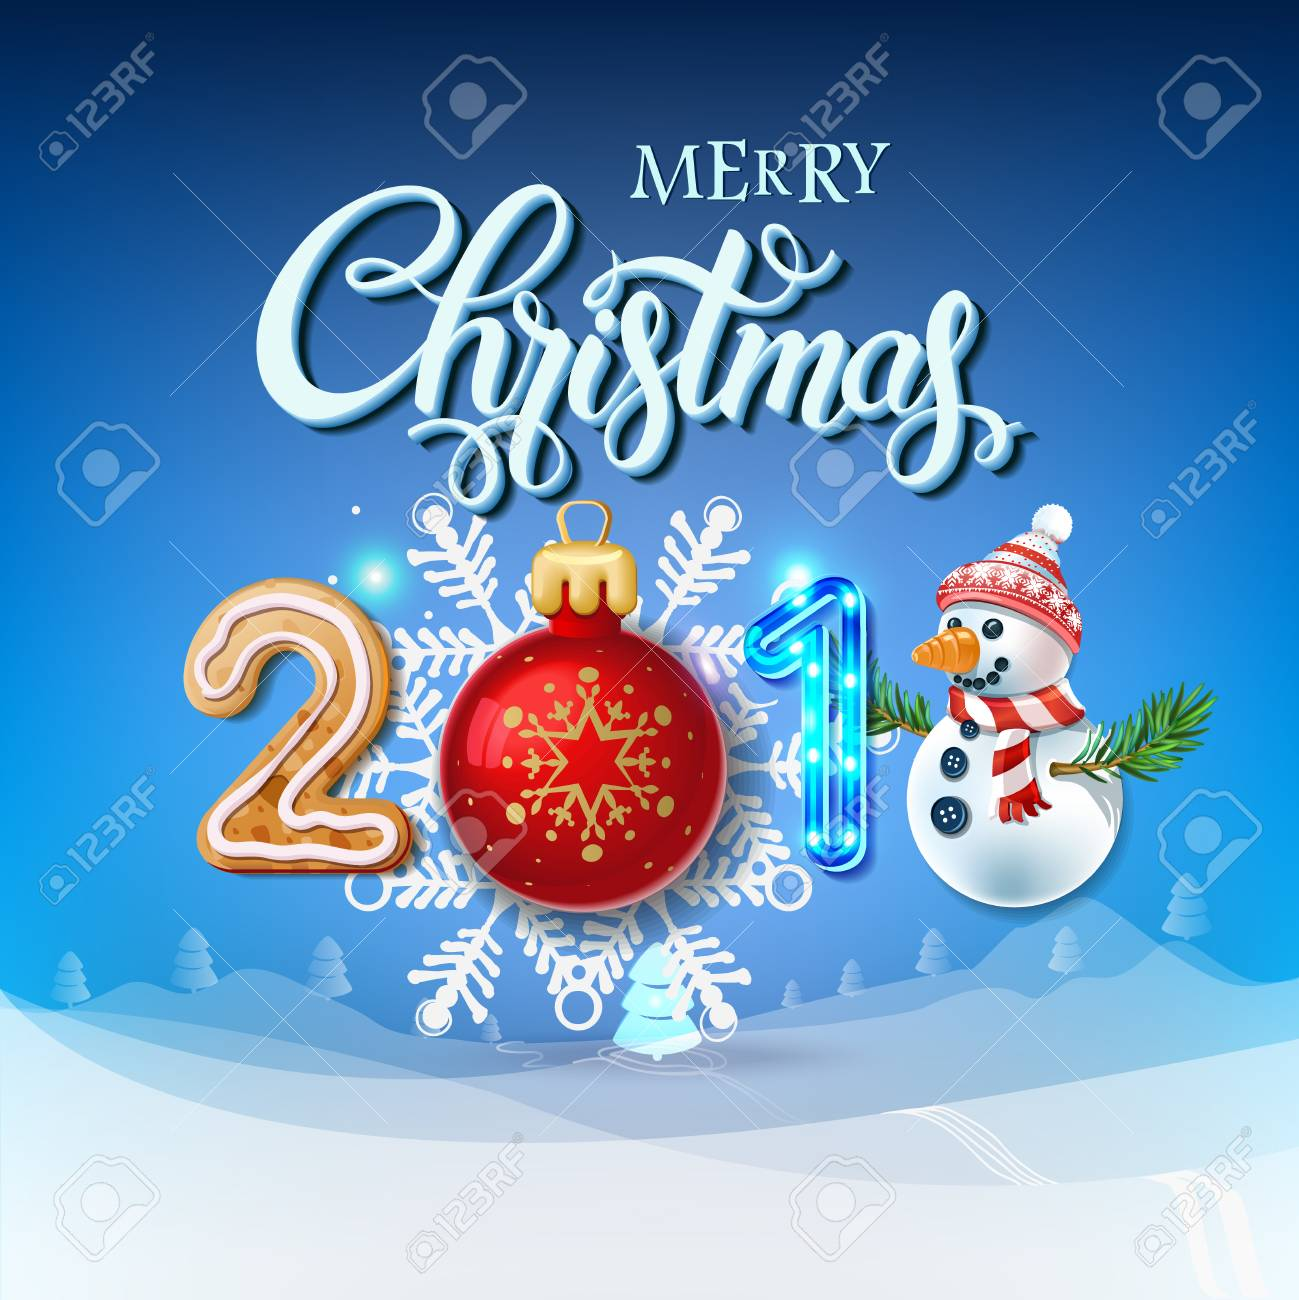 Merry Christmas Poster 2018.Merry Christmas 2018 Decoration Poster Card Happy New Year Sign